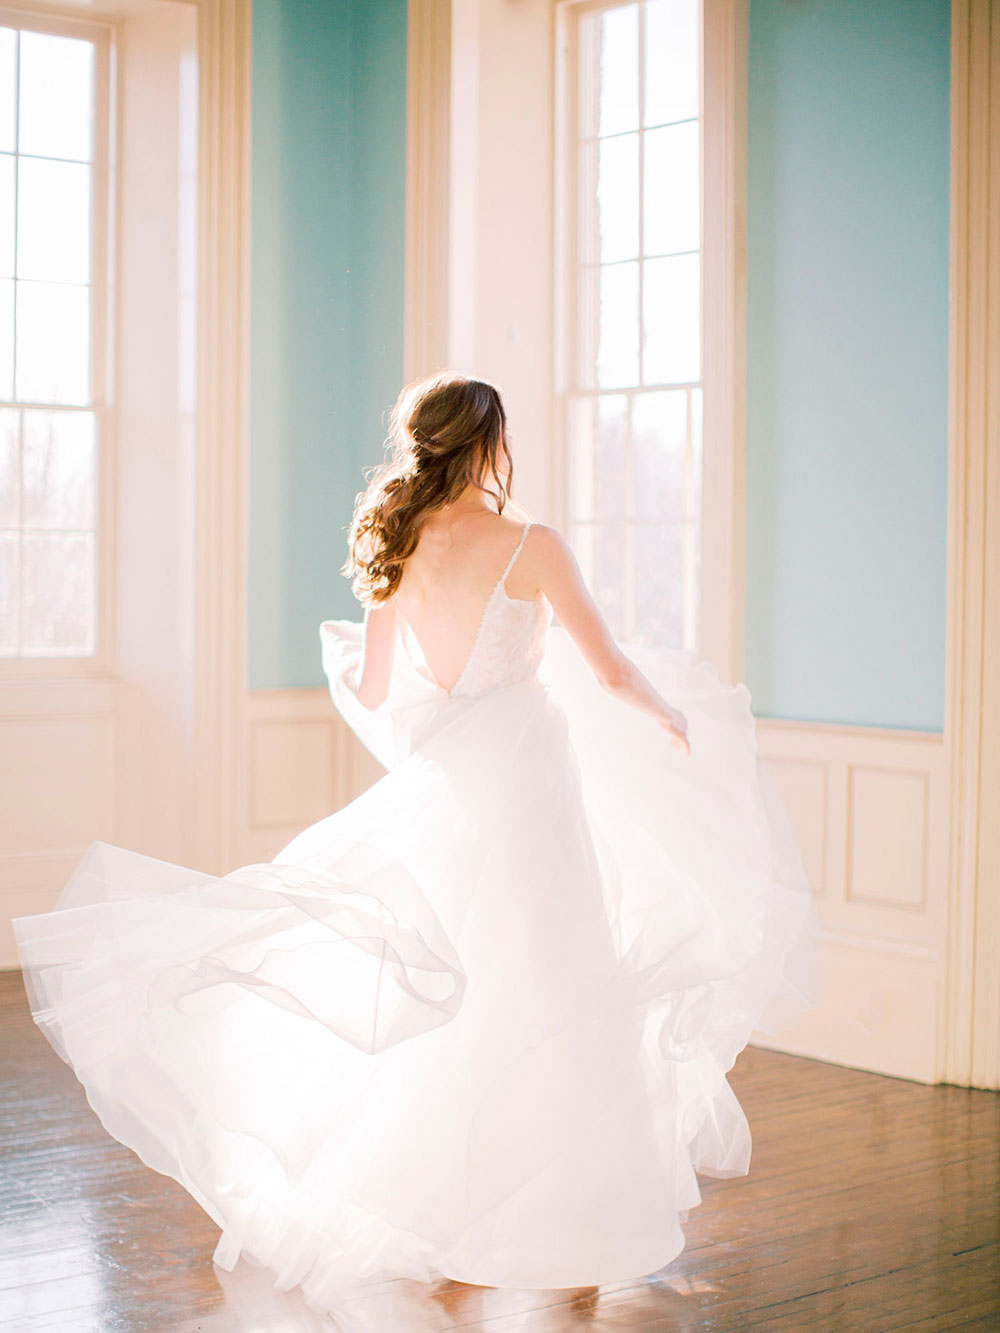 Niagara-on-the-Lake-Courthouse-Vineyard-Bride-Editorial-photo-by-Jessica-Imrie-Photography-038.jpg